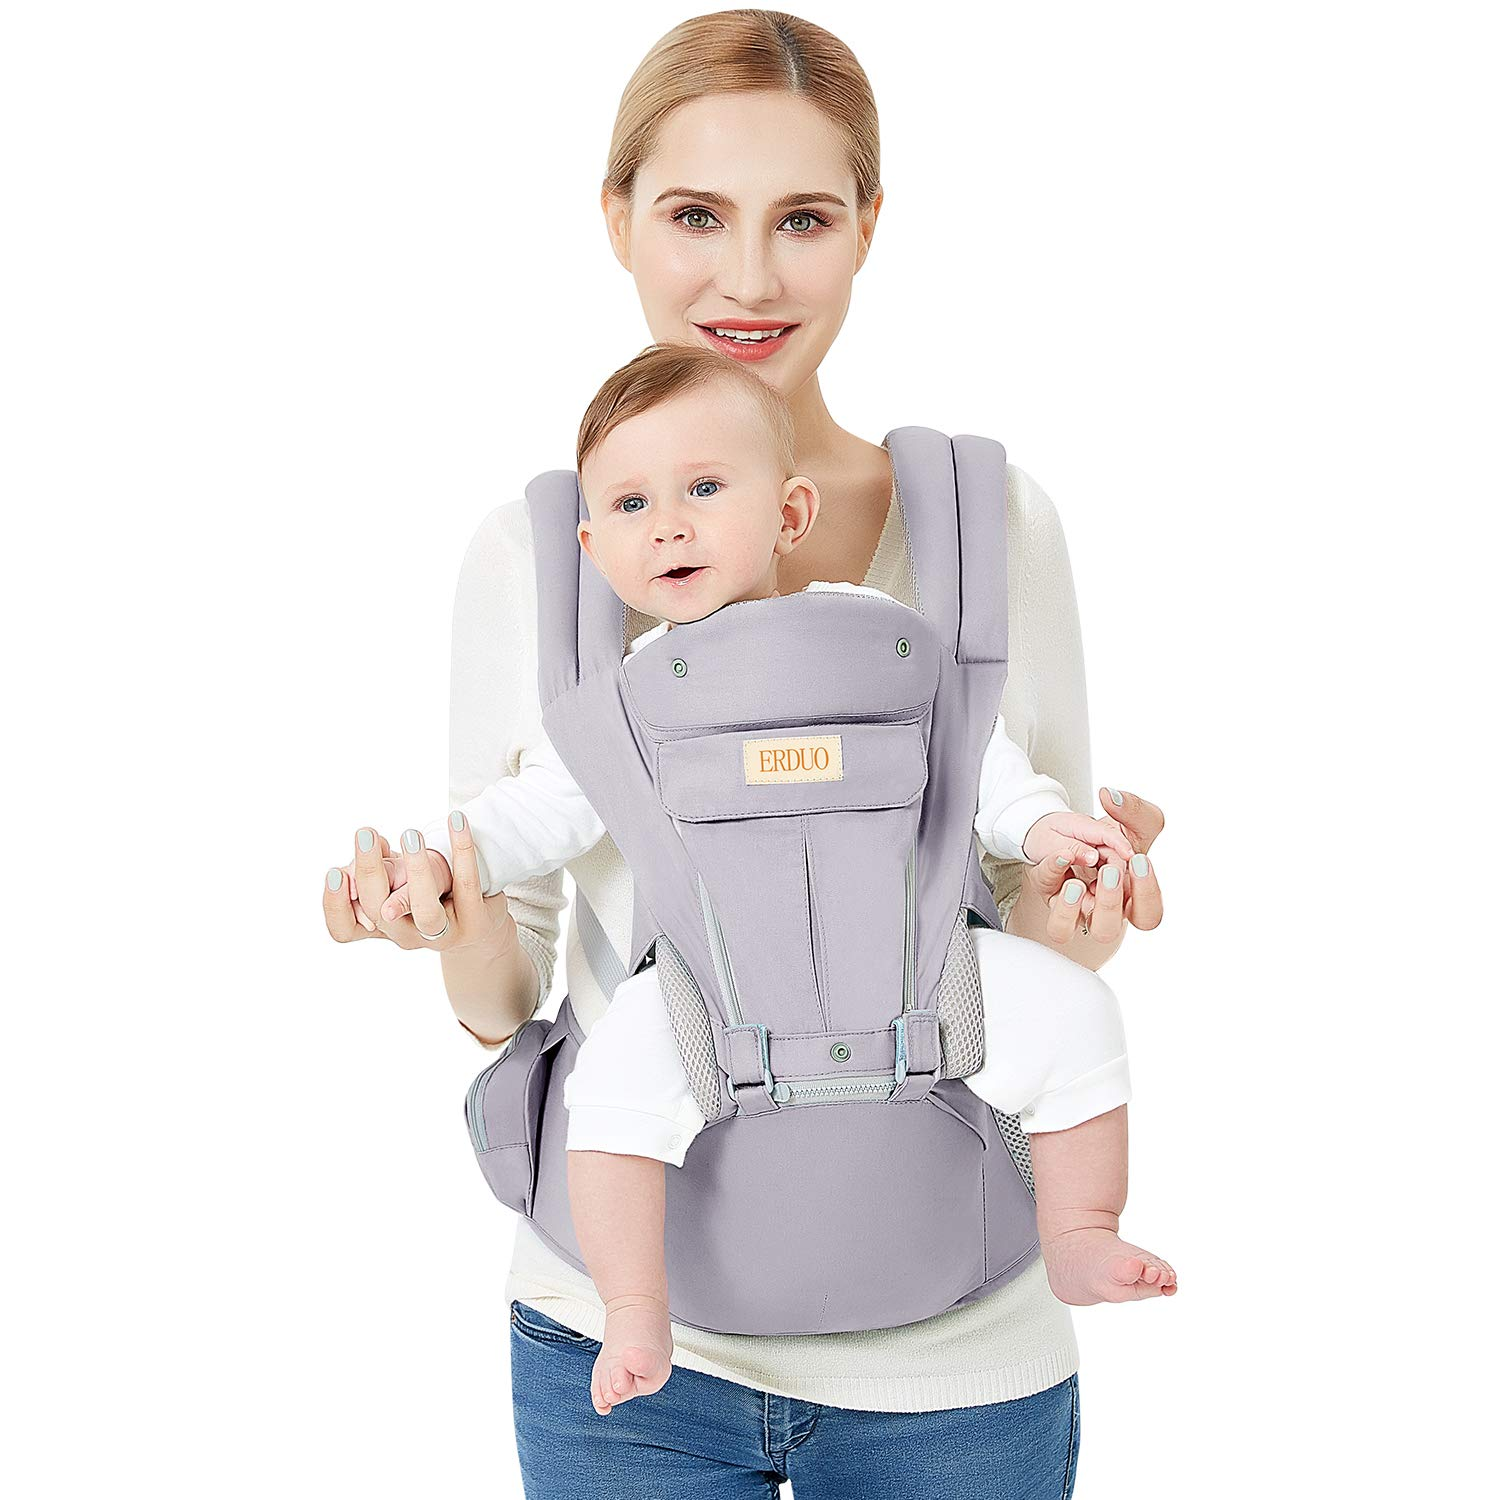 3D Baby Hip Carrier All Season Baby Sling with 9 Carry Positions Truly Hands-Free for Easy Breastfeeding, No Infant Insert Needed, One Size Fits All -Adapt to Newborn, Infant Toddler, Great Hiking